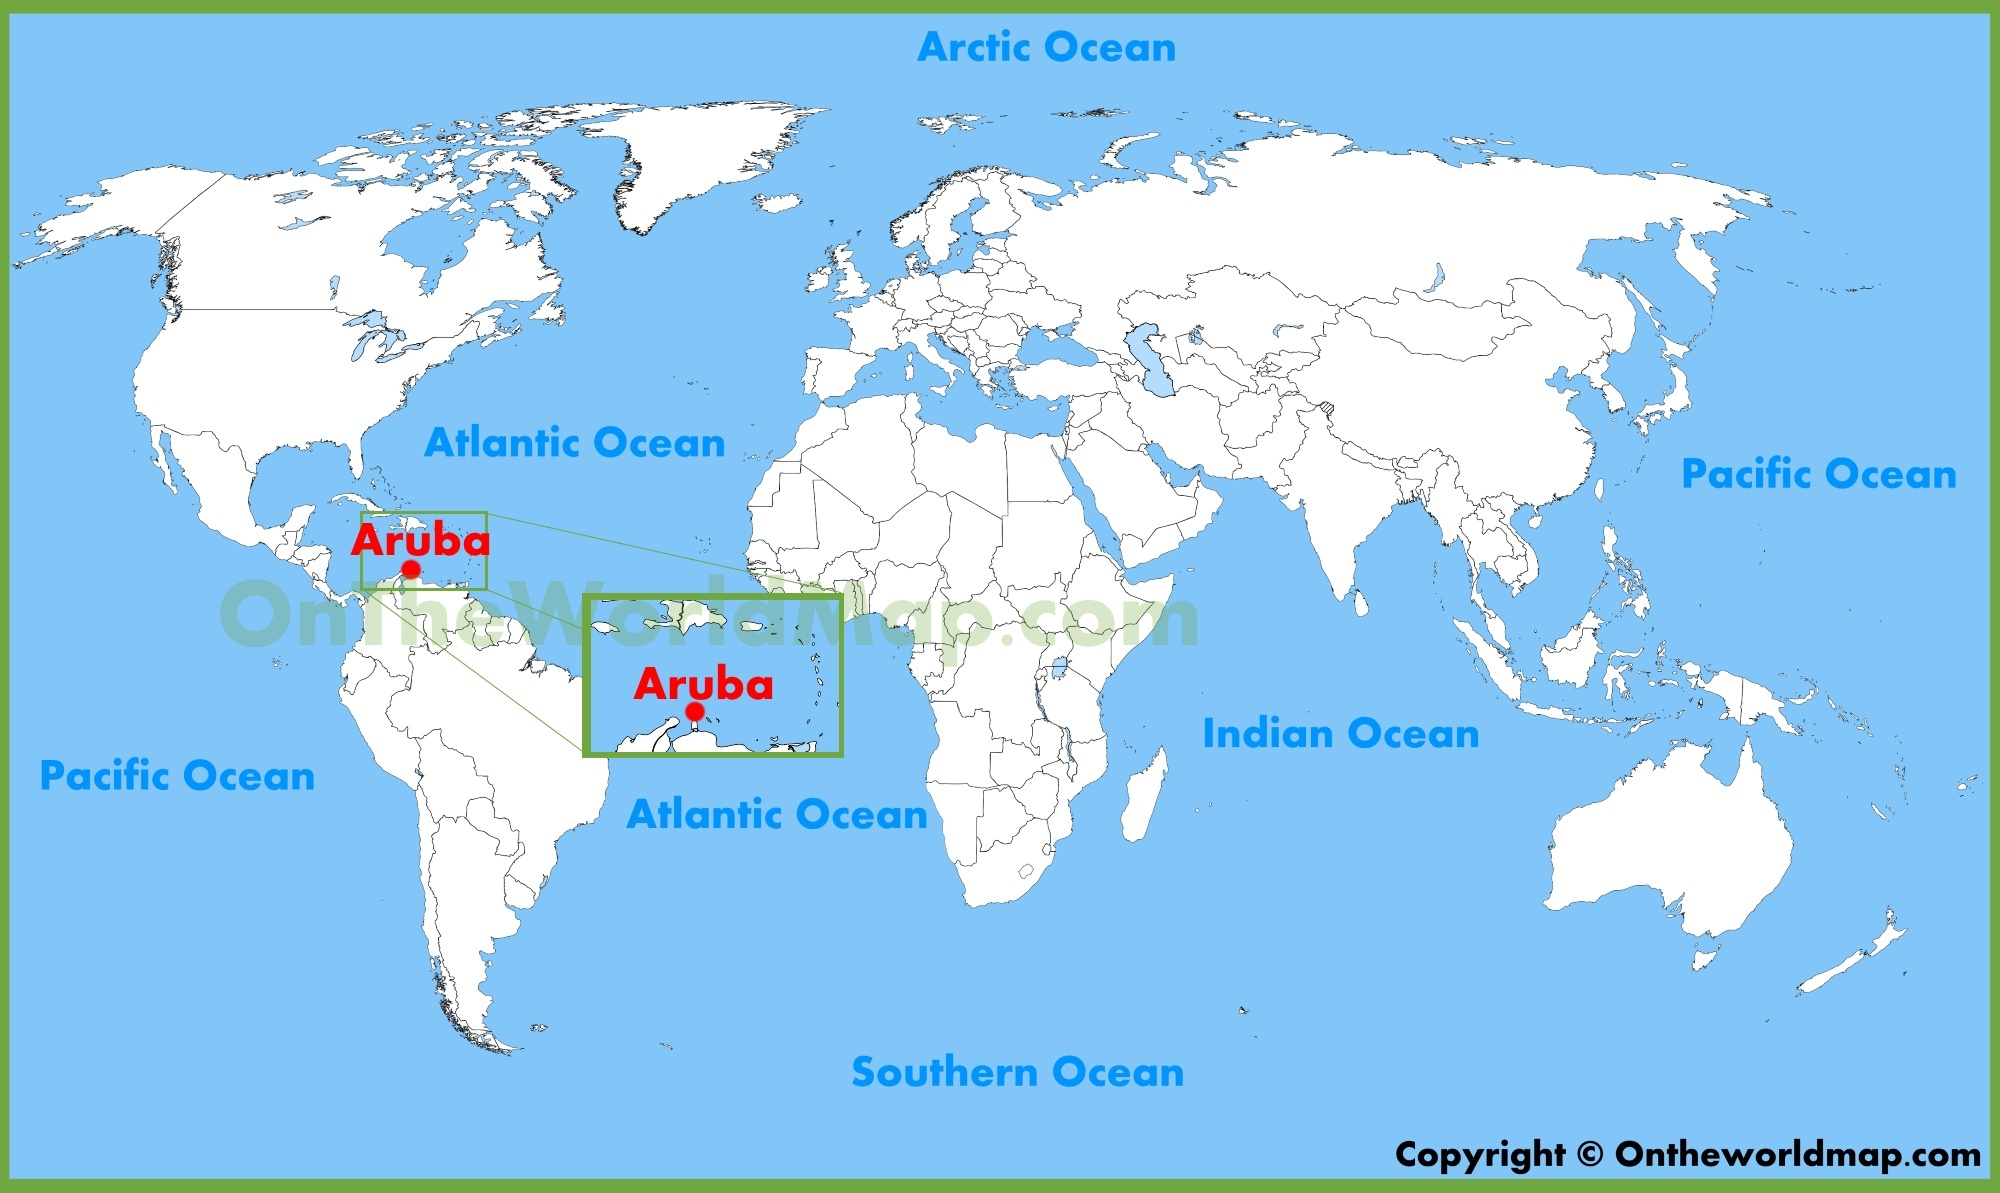 Where Is Aruba On The Map Aruba location on the World Map